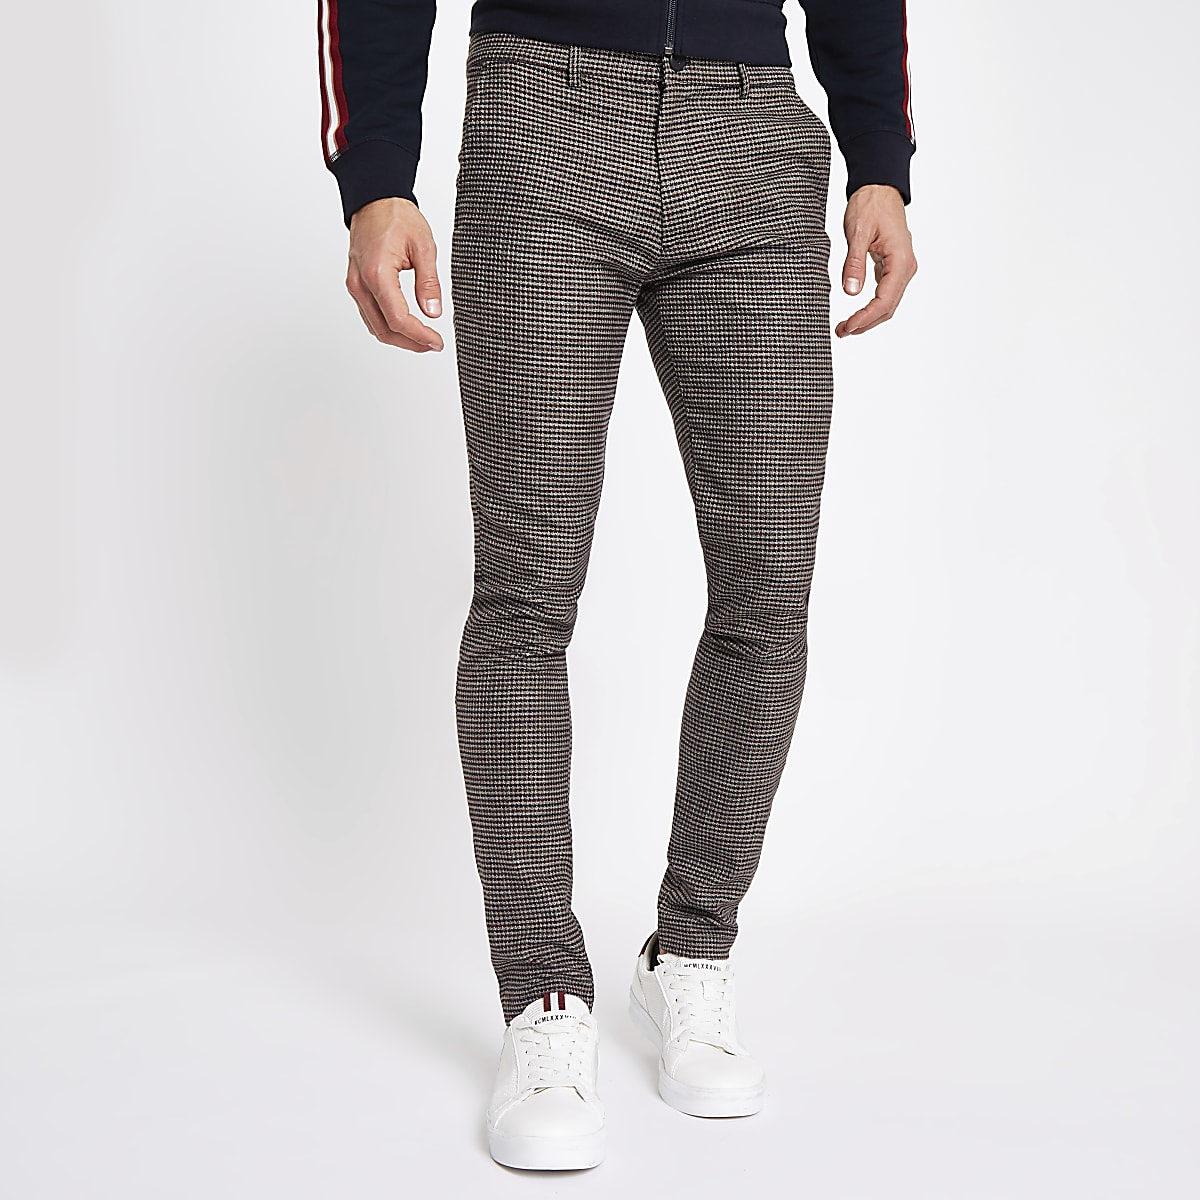 Brown dogtooth stretch super skinny trousers